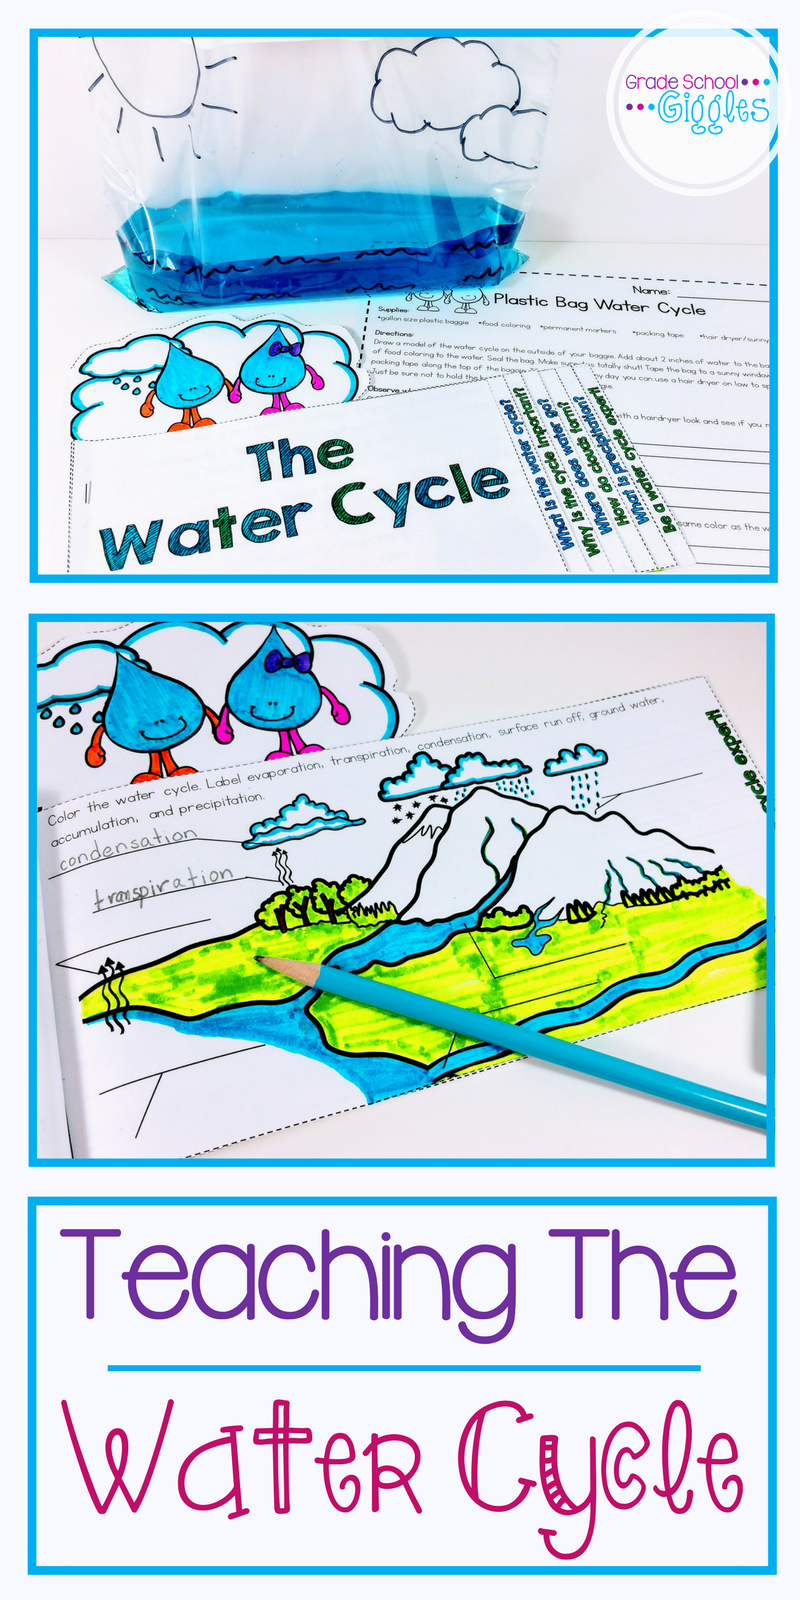 planning the lesson and prepping activities can take up a lot of time if you want some awesome printables for teaching kids about the water cycle  [ 800 x 1600 Pixel ]